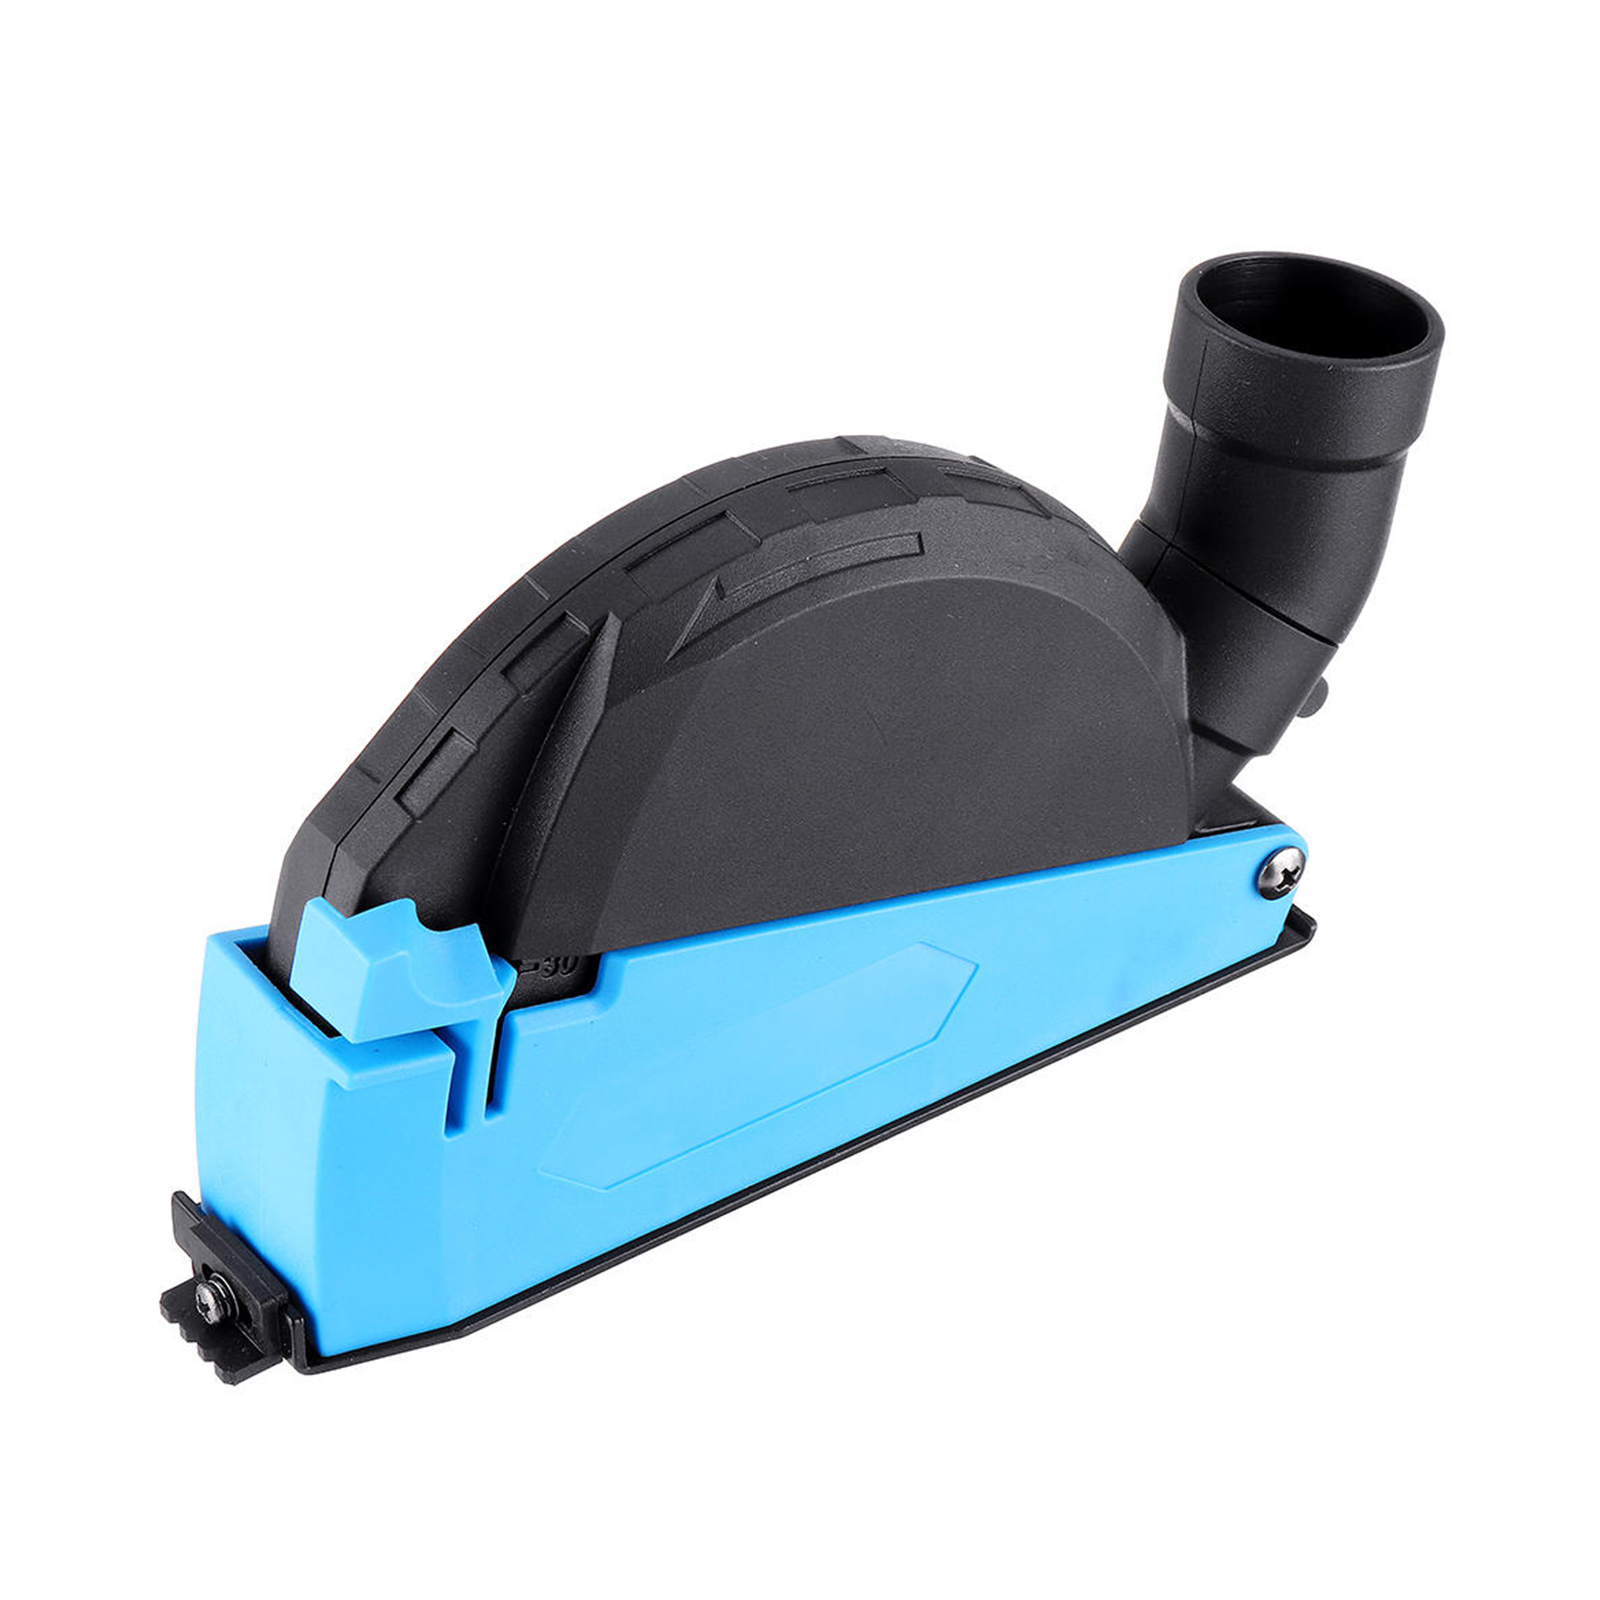 Angle Grinder Cutting Dust Cover 4 To 5 Inch Angle Grinder Dust Collector Universal Surface Cutting Dust Shroud Accessory